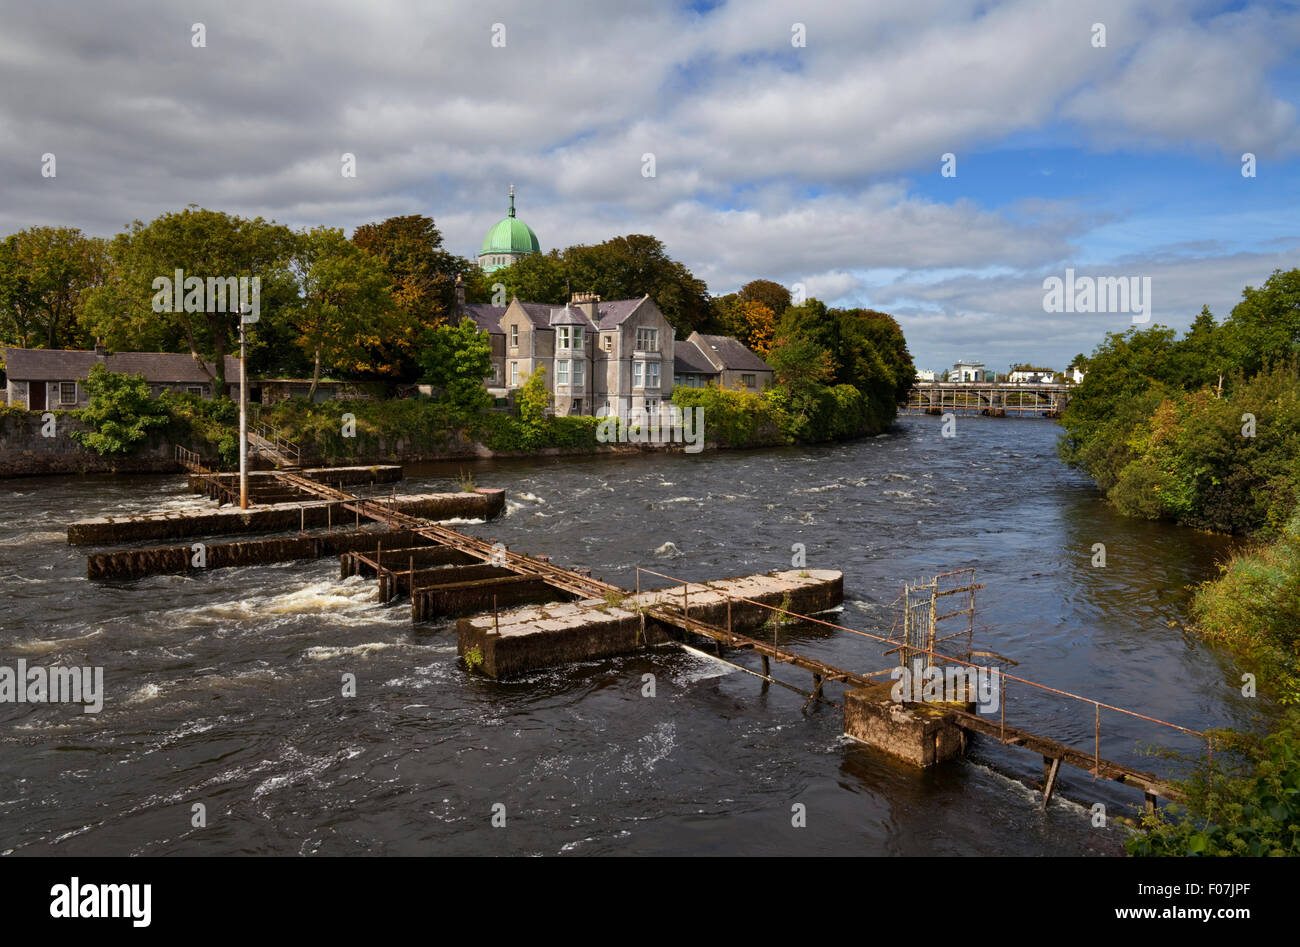 The Salmon Weir on the River Corrib, Galway City, Ireland - Stock Image